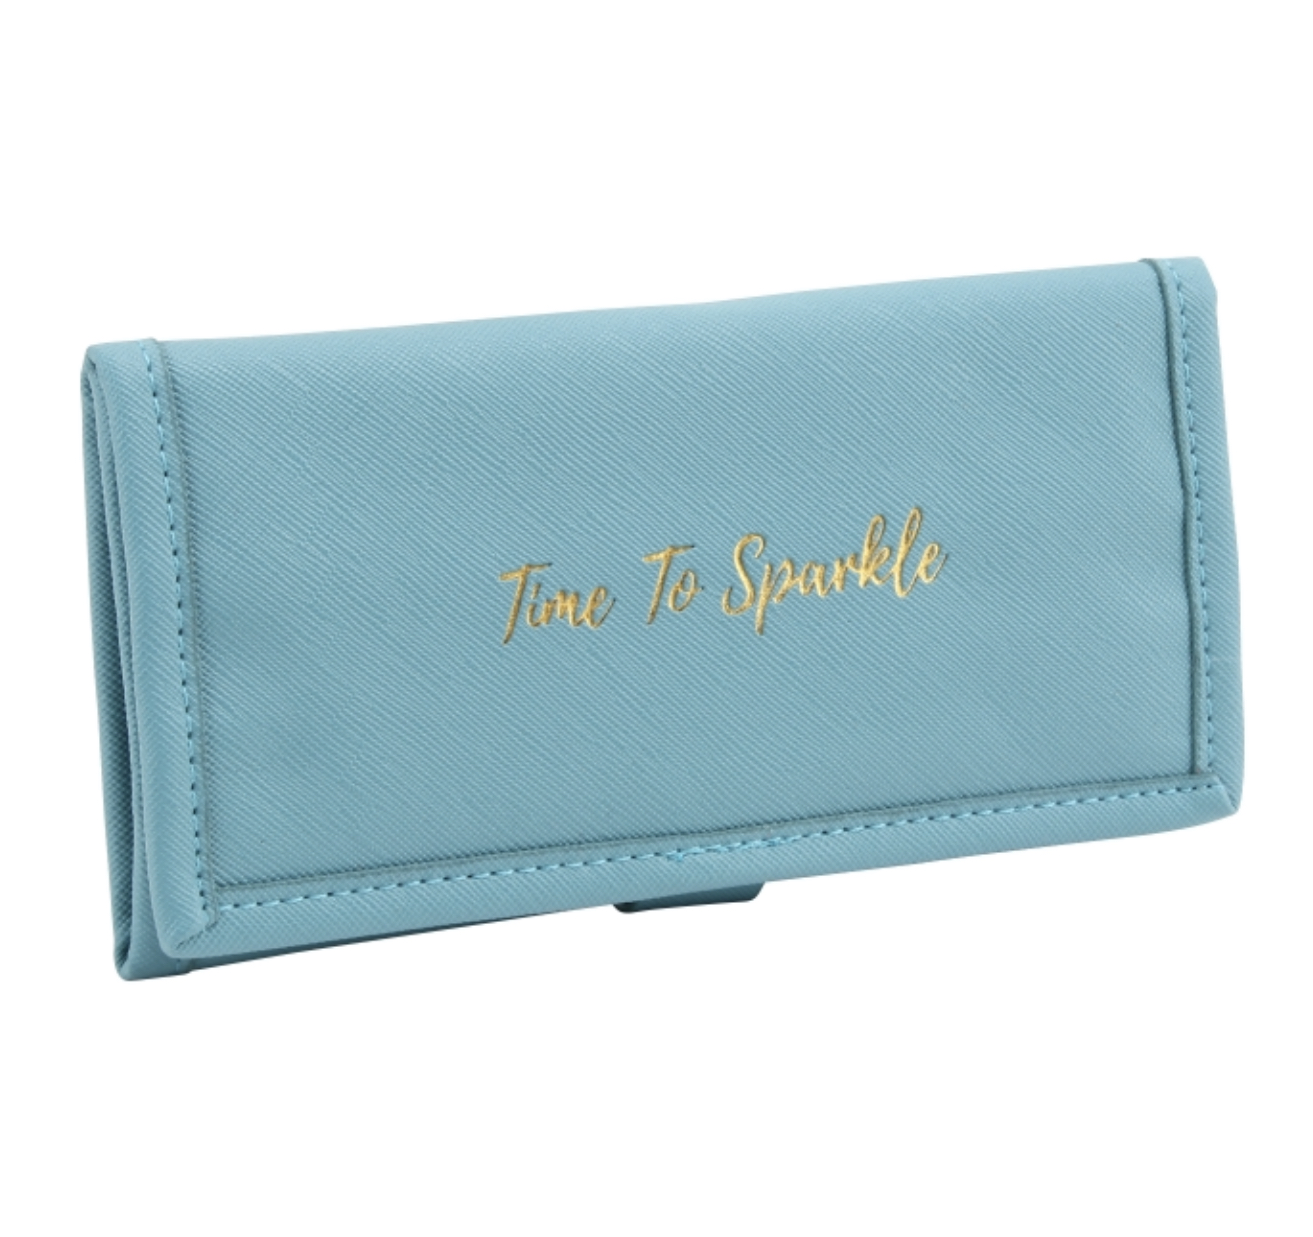 TIME TO SPARKLE BLUE JEWELLERY ROLL. Travel jewellery roll by willow & rose.